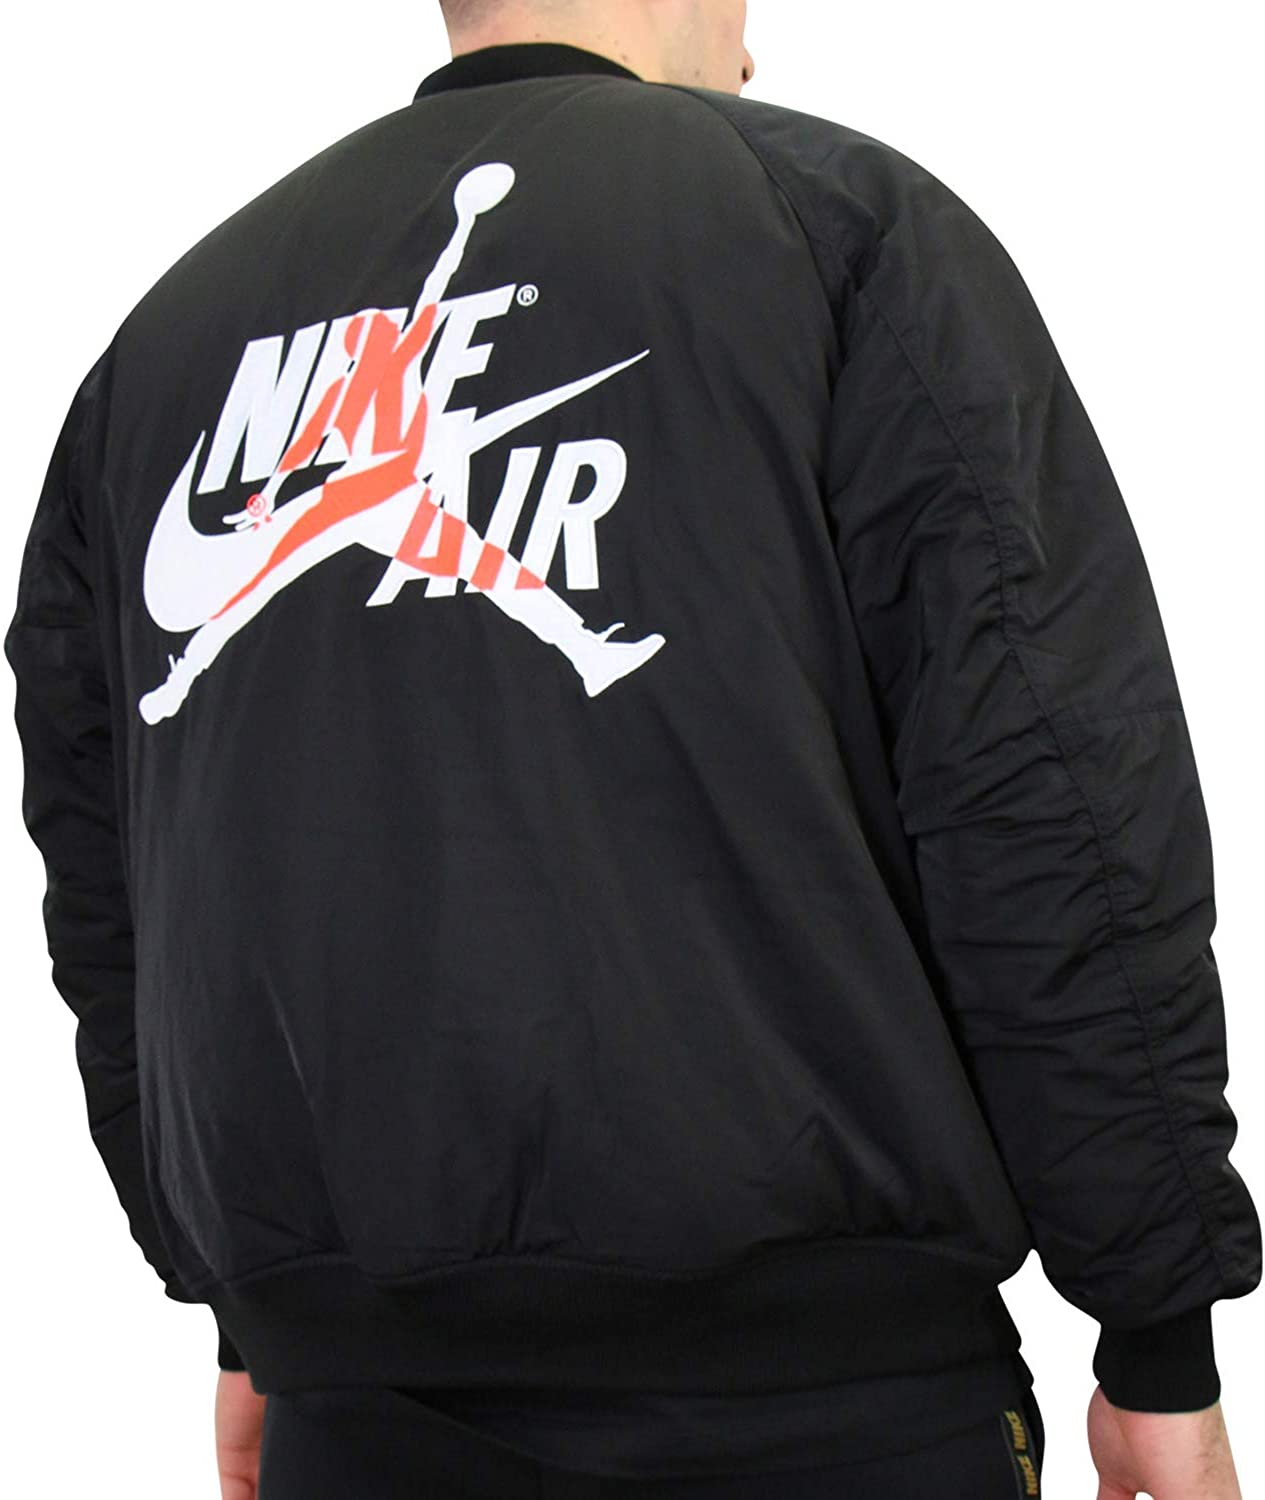 Pensar en el futuro malicioso fe  Jordan Wings MA-1 Jacket at Amazon Men's Clothing store